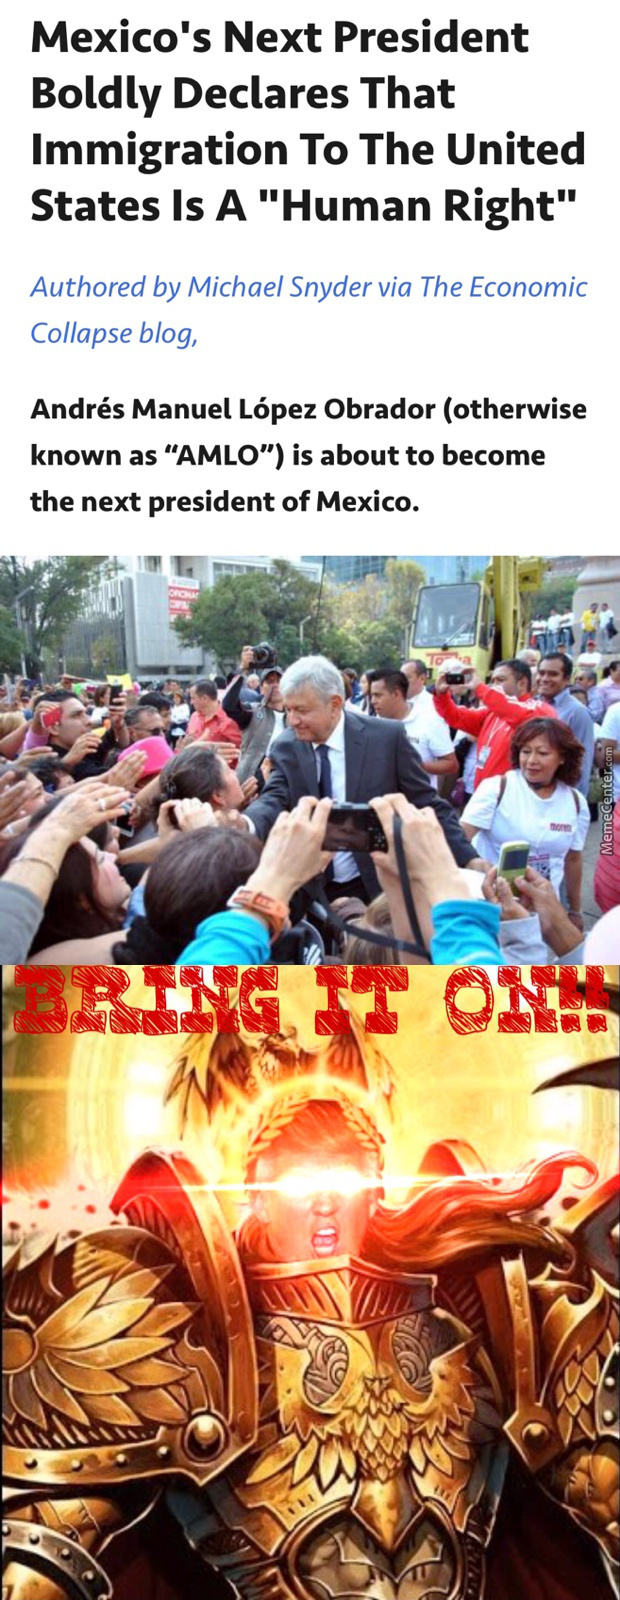 Invading Mexico Is The Humane Thing To Do!